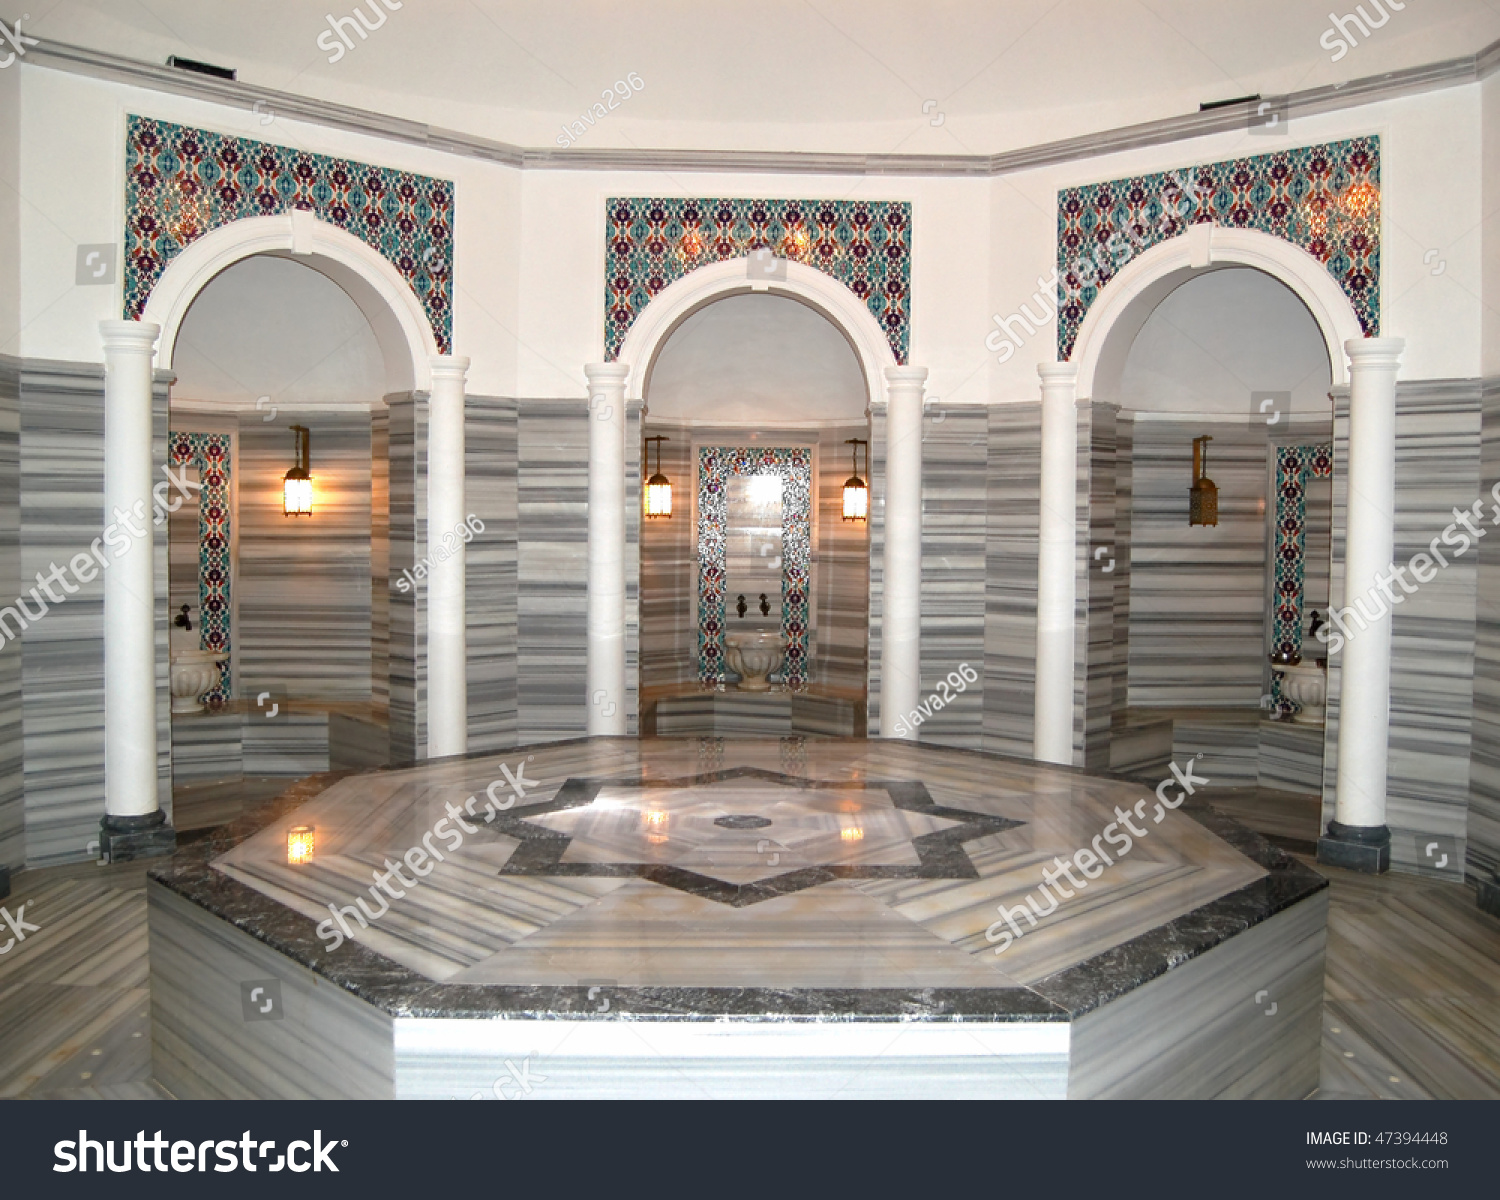 turkish bath hamam hotels spa area stock photo 47394448 shutterstock. Black Bedroom Furniture Sets. Home Design Ideas